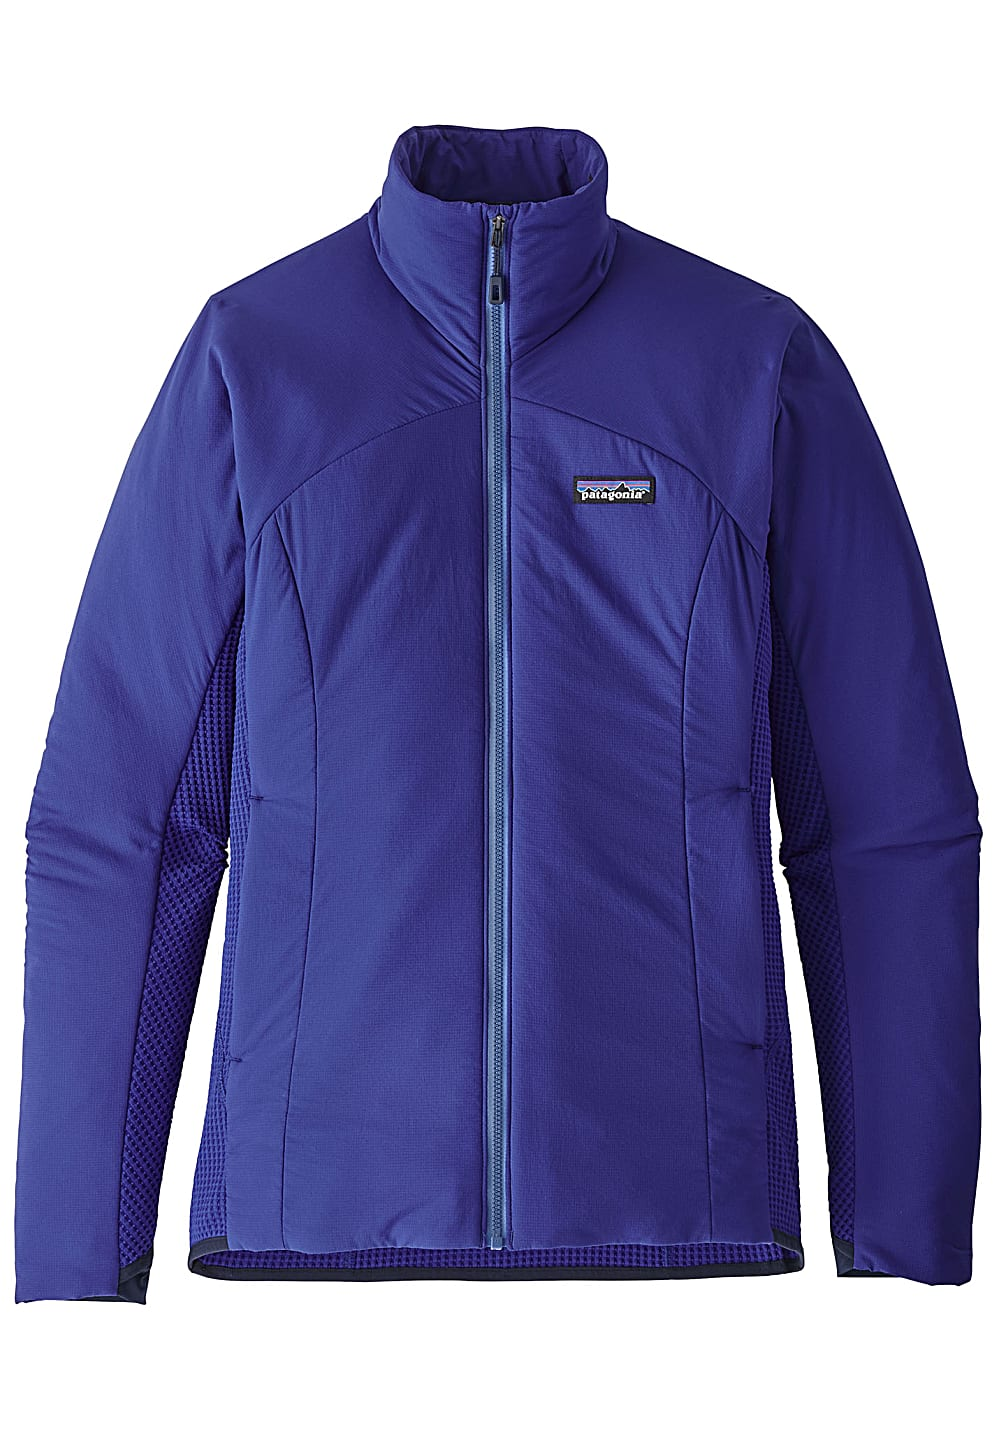 patagonia nano air light hybrid veste de randonn e pour femme bleu planet sports. Black Bedroom Furniture Sets. Home Design Ideas